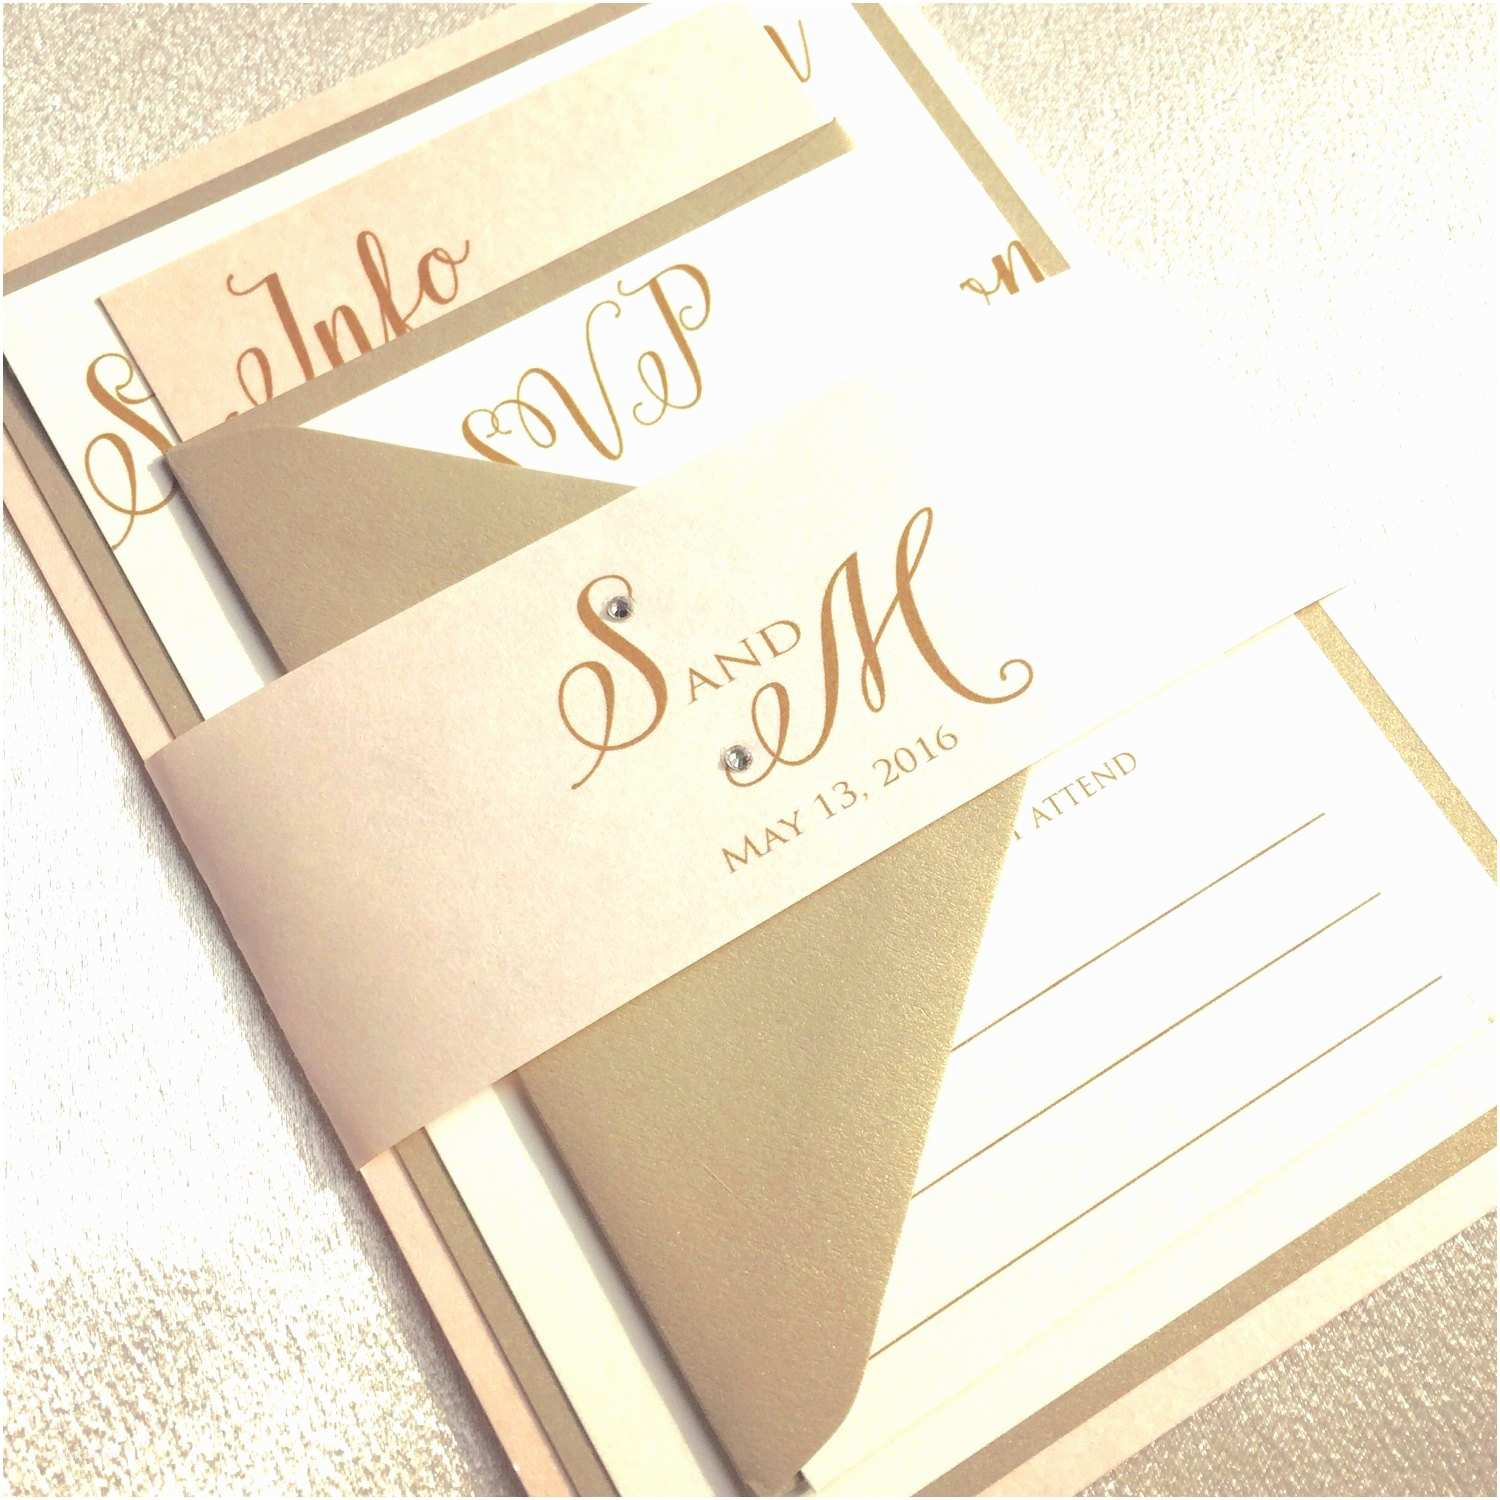 Blush and Gold Wedding Invitations Wedding Invitations Gold Wedding Invitation Blush and Gold